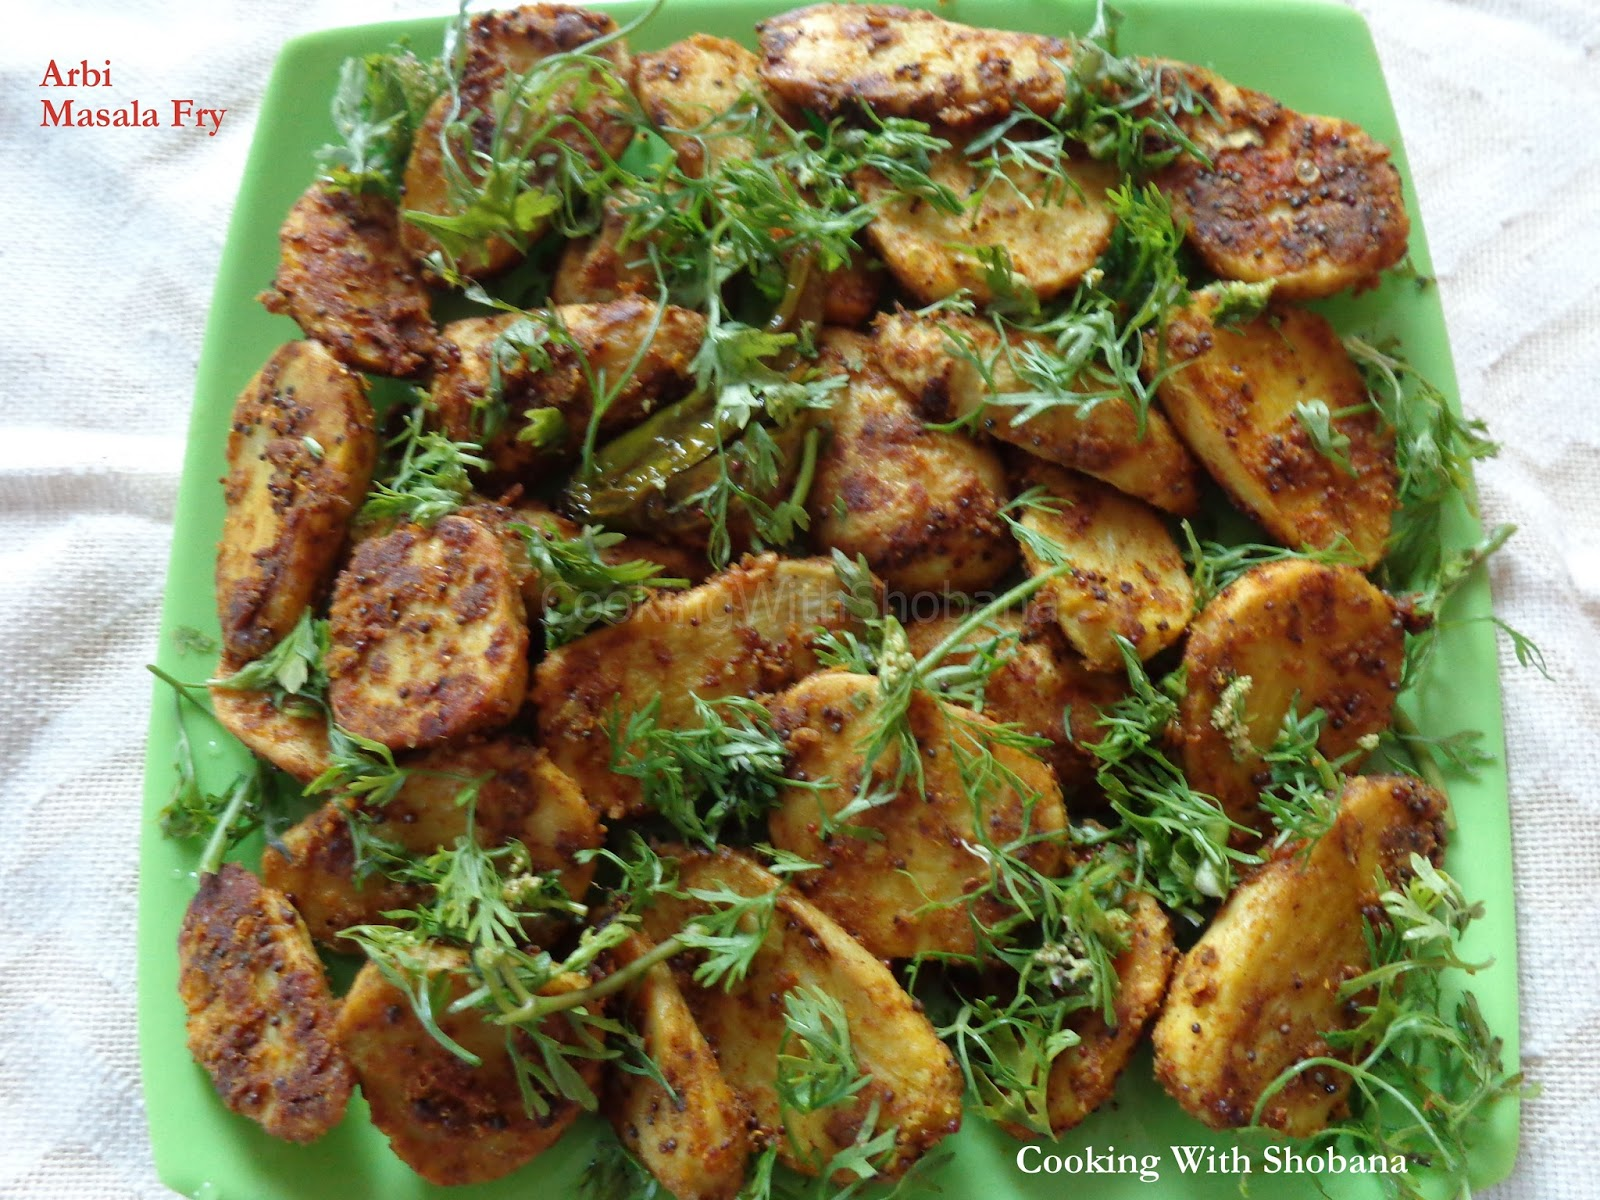 Cooking with shobana july 2015 i wanted to try out a north indian recipe using colocasia and came across arbi masala fry in a youtube video from one of my favourite cookery experts forumfinder Image collections